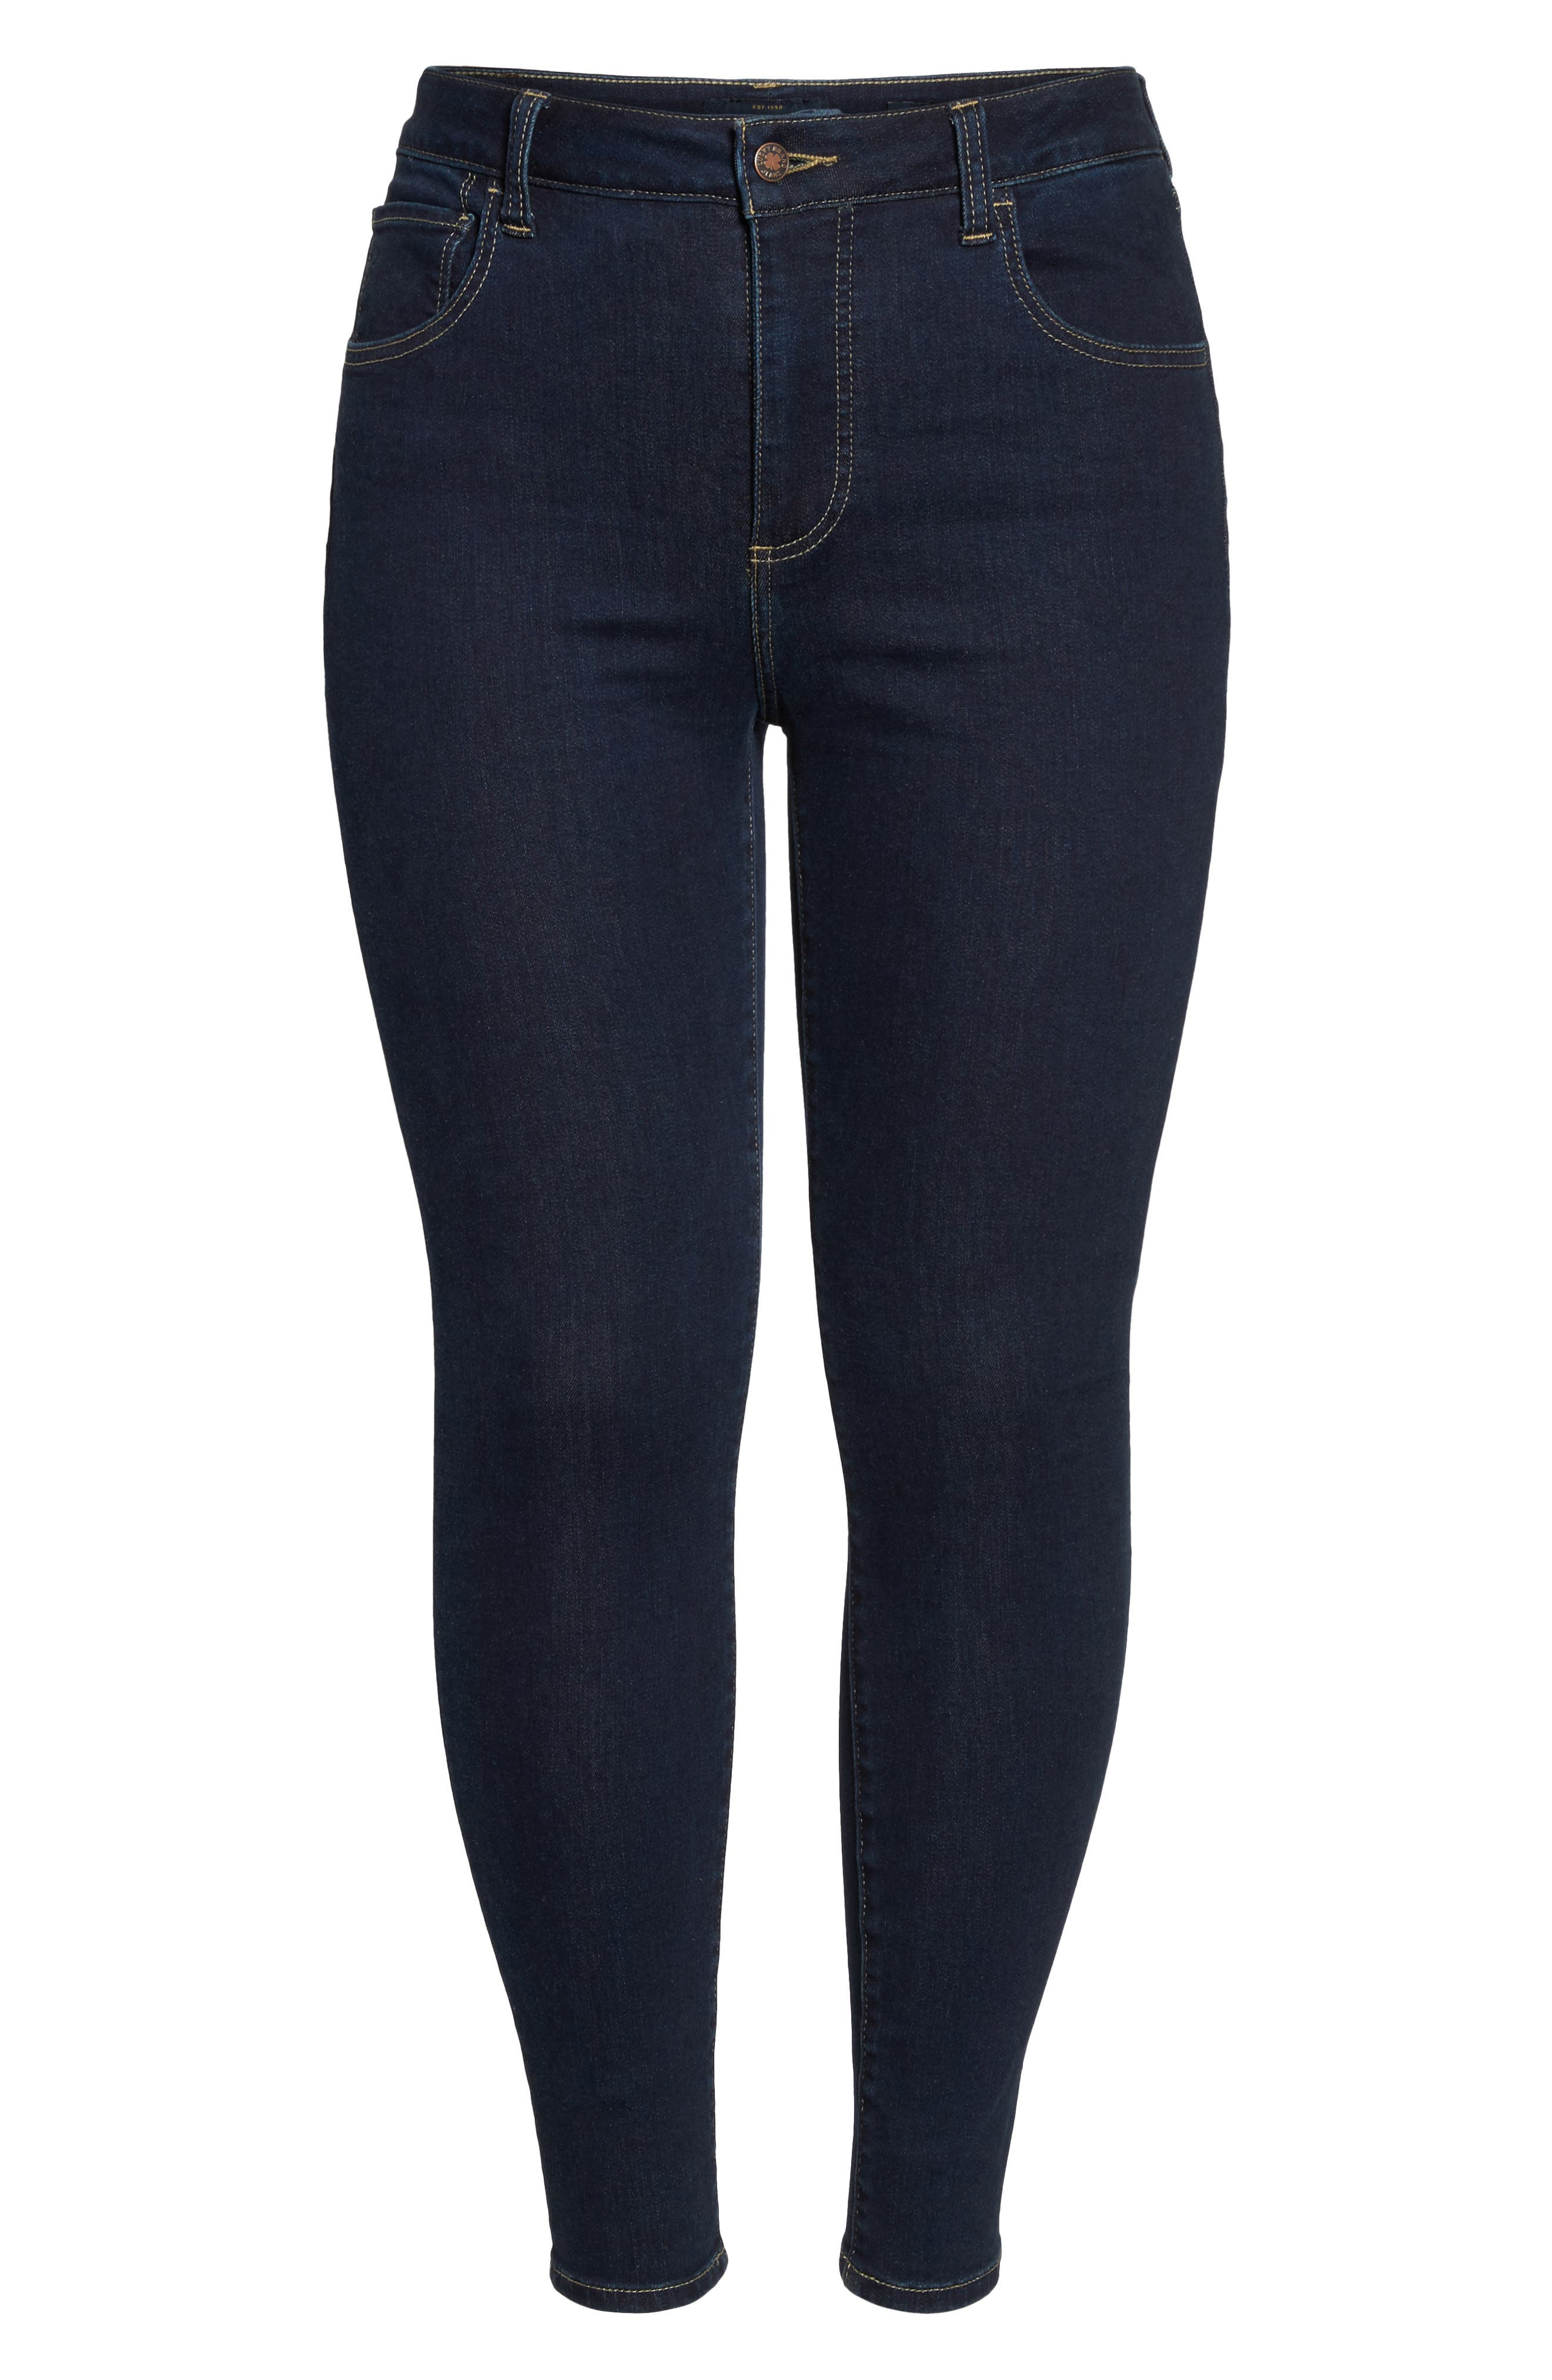 Emma Legging Jeans,                             Alternate thumbnail 7, color,                             Breaker